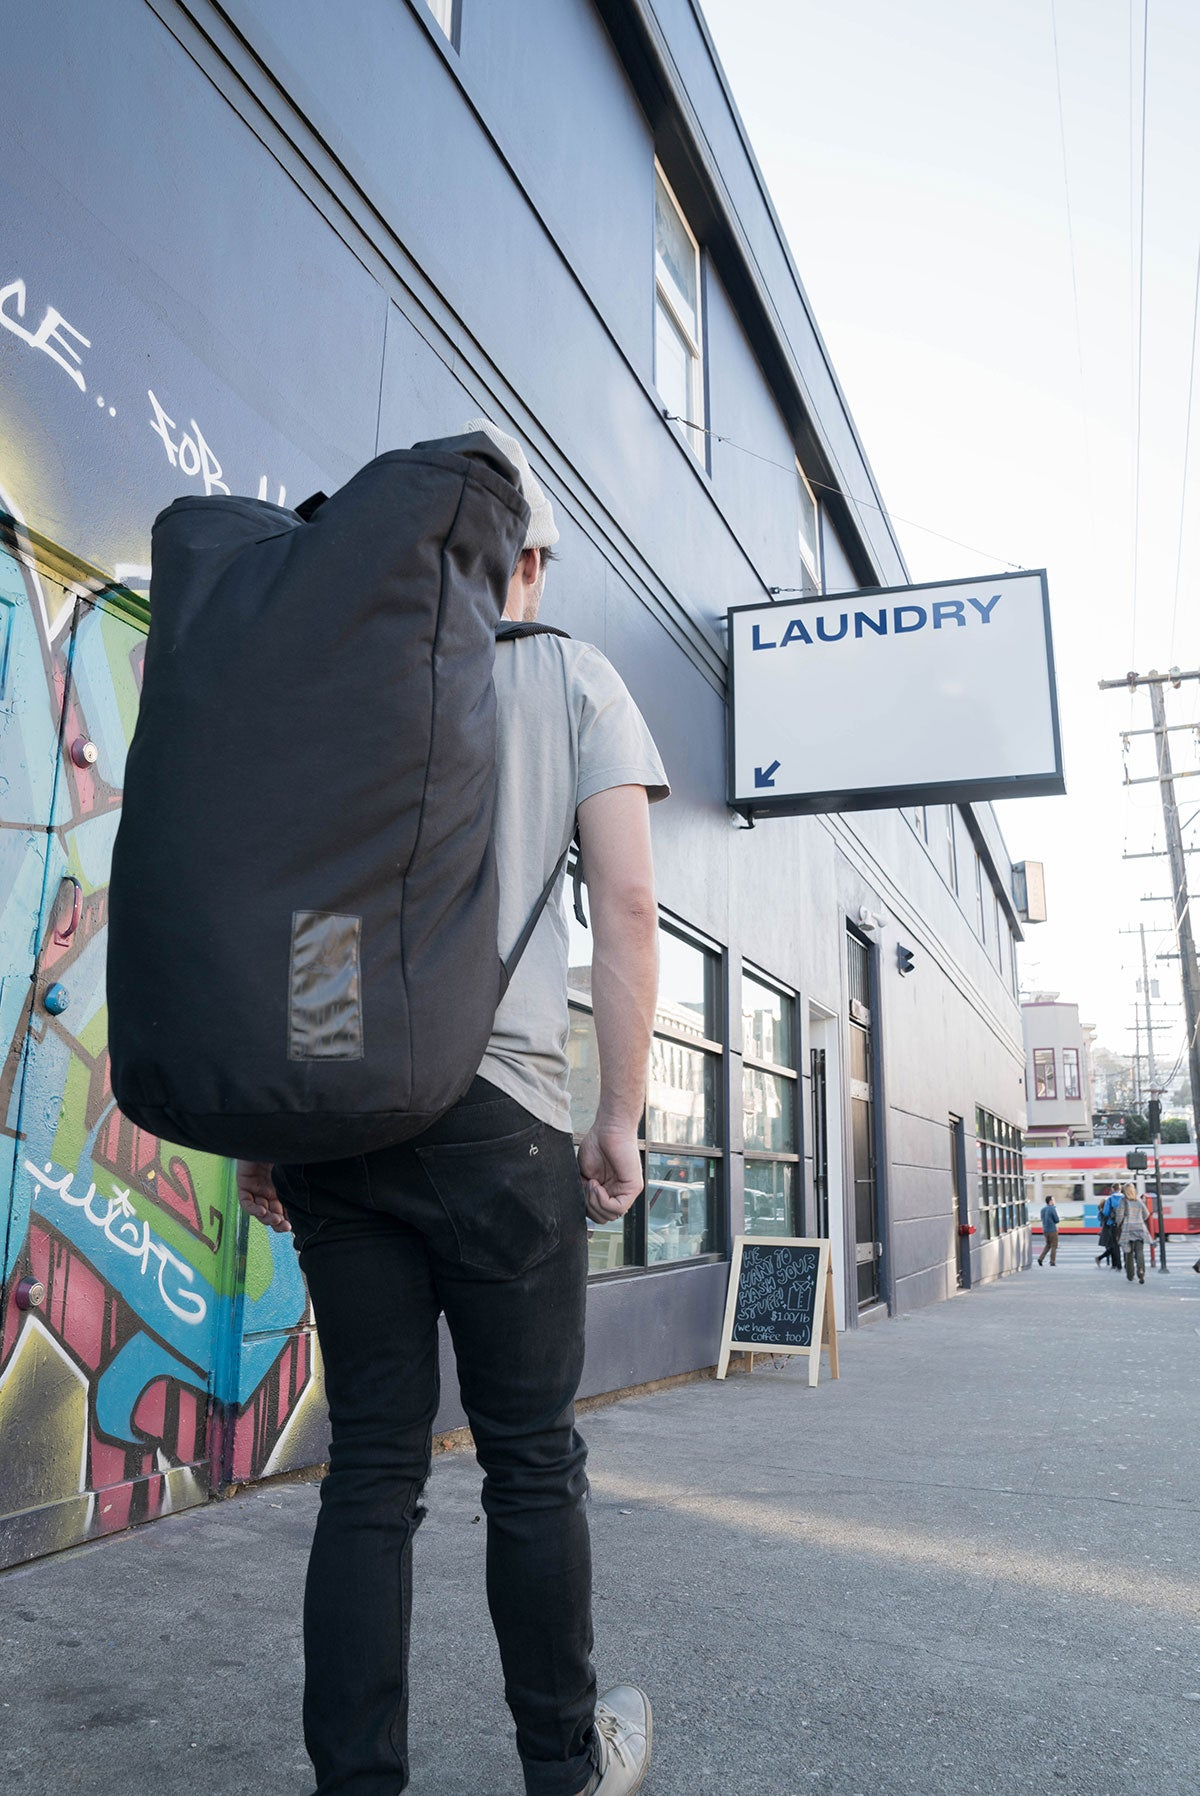 The ChipmunkBag | 115 Liter Laundry Backpack Laundry Backpack - The World's Best Laundry Bag